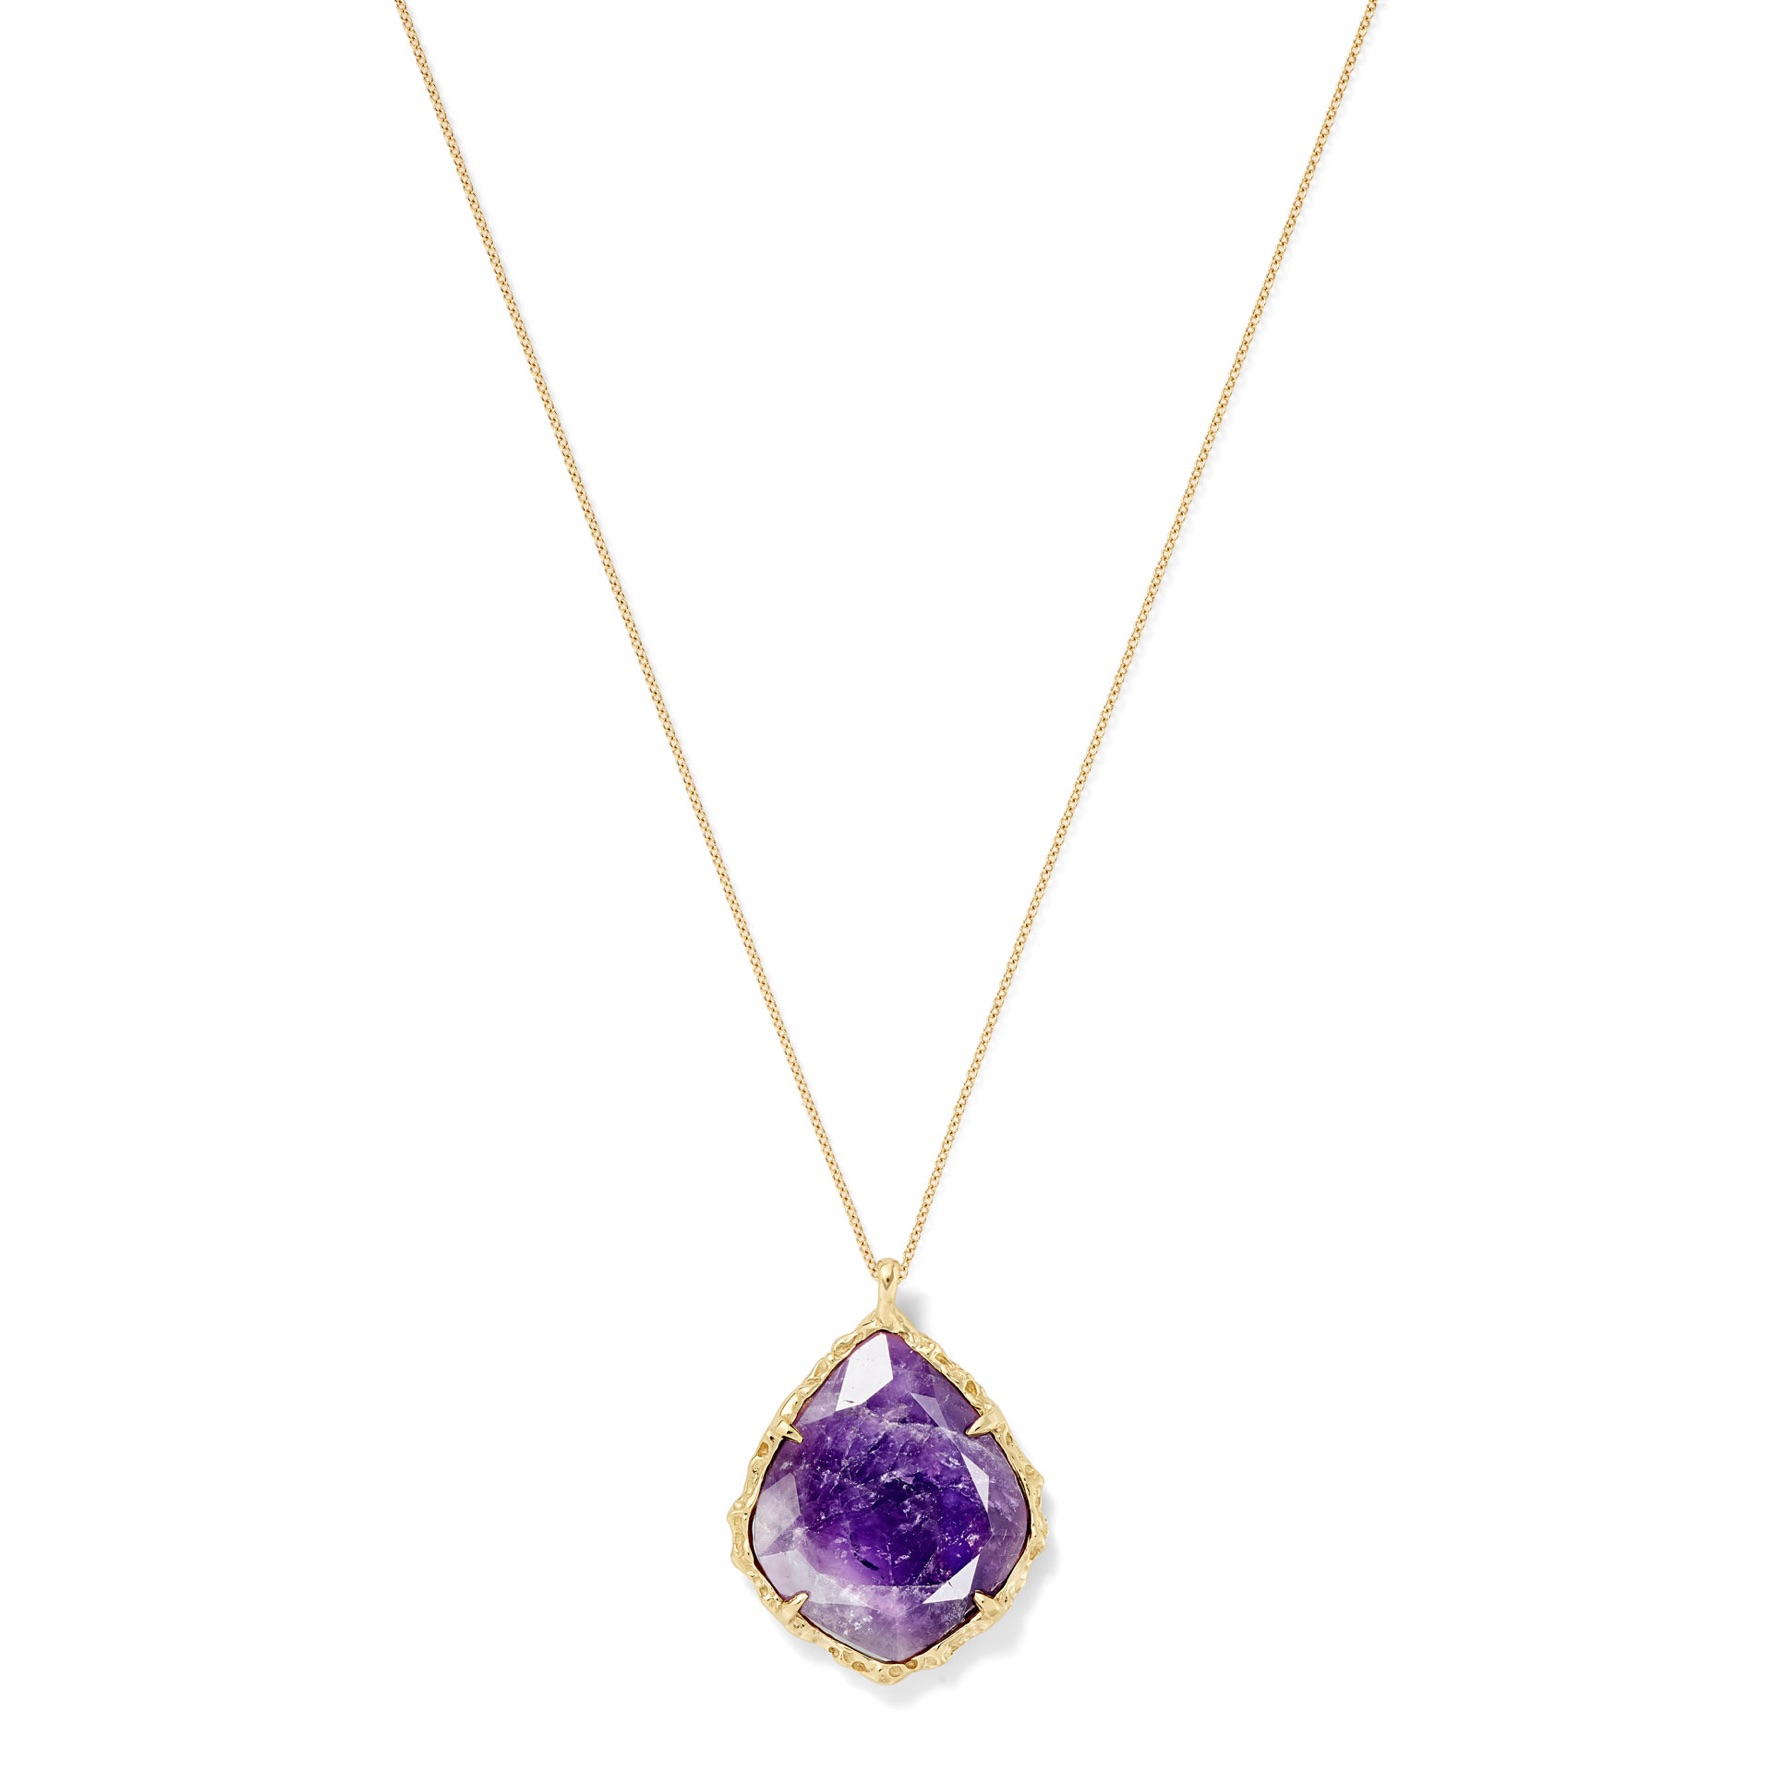 Trapezoid Necklace in Amethyst